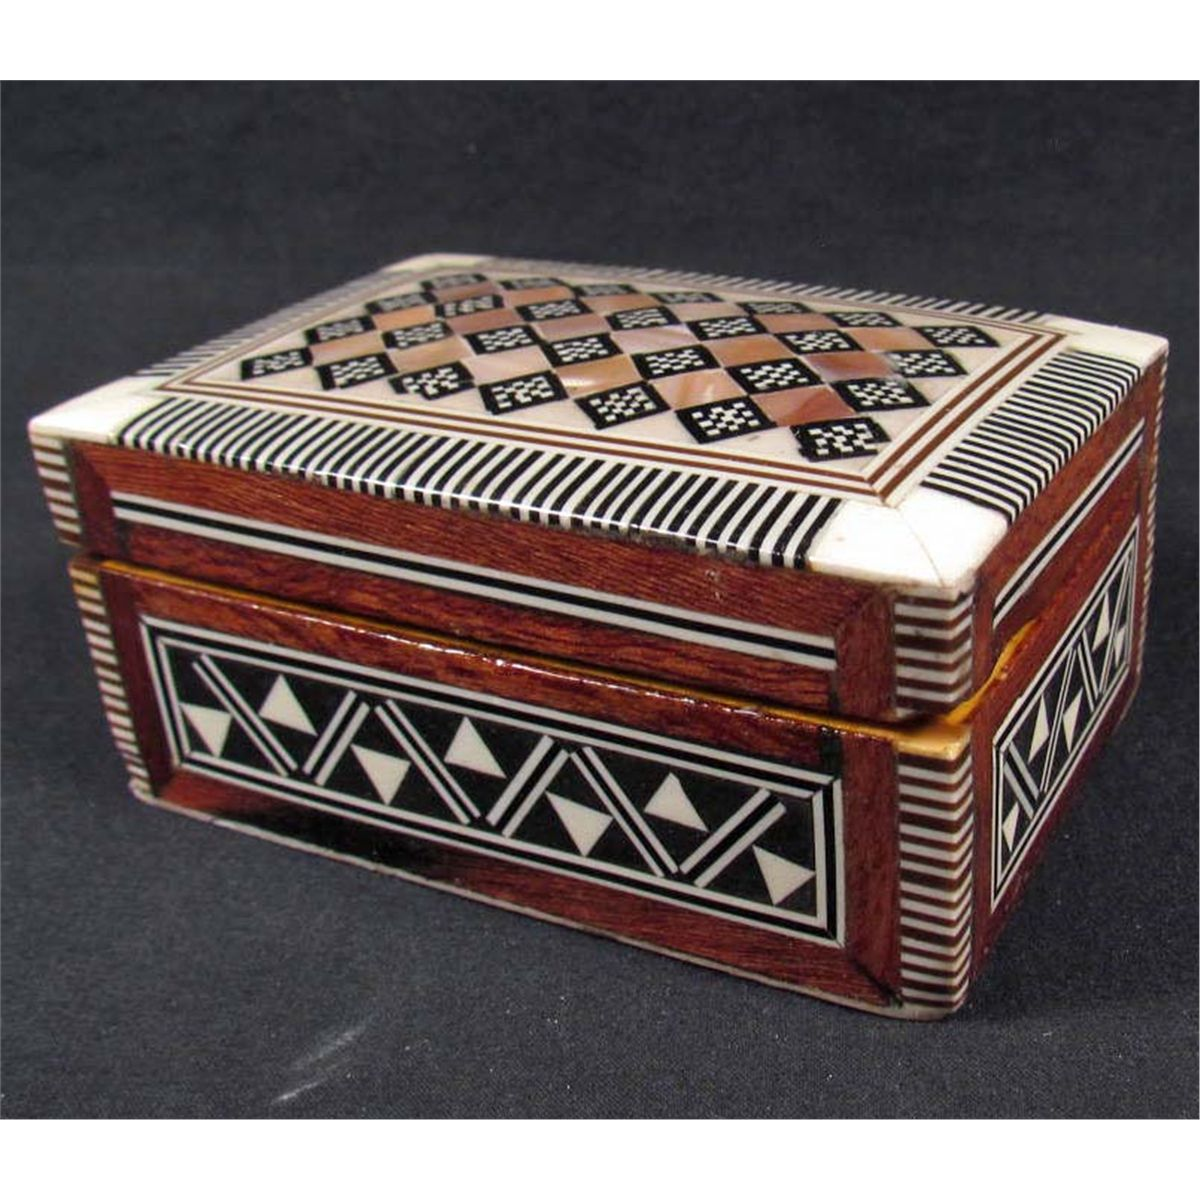 EGYPTIAN JEWELRY BOX INLAID W MOTHER OF PEARL